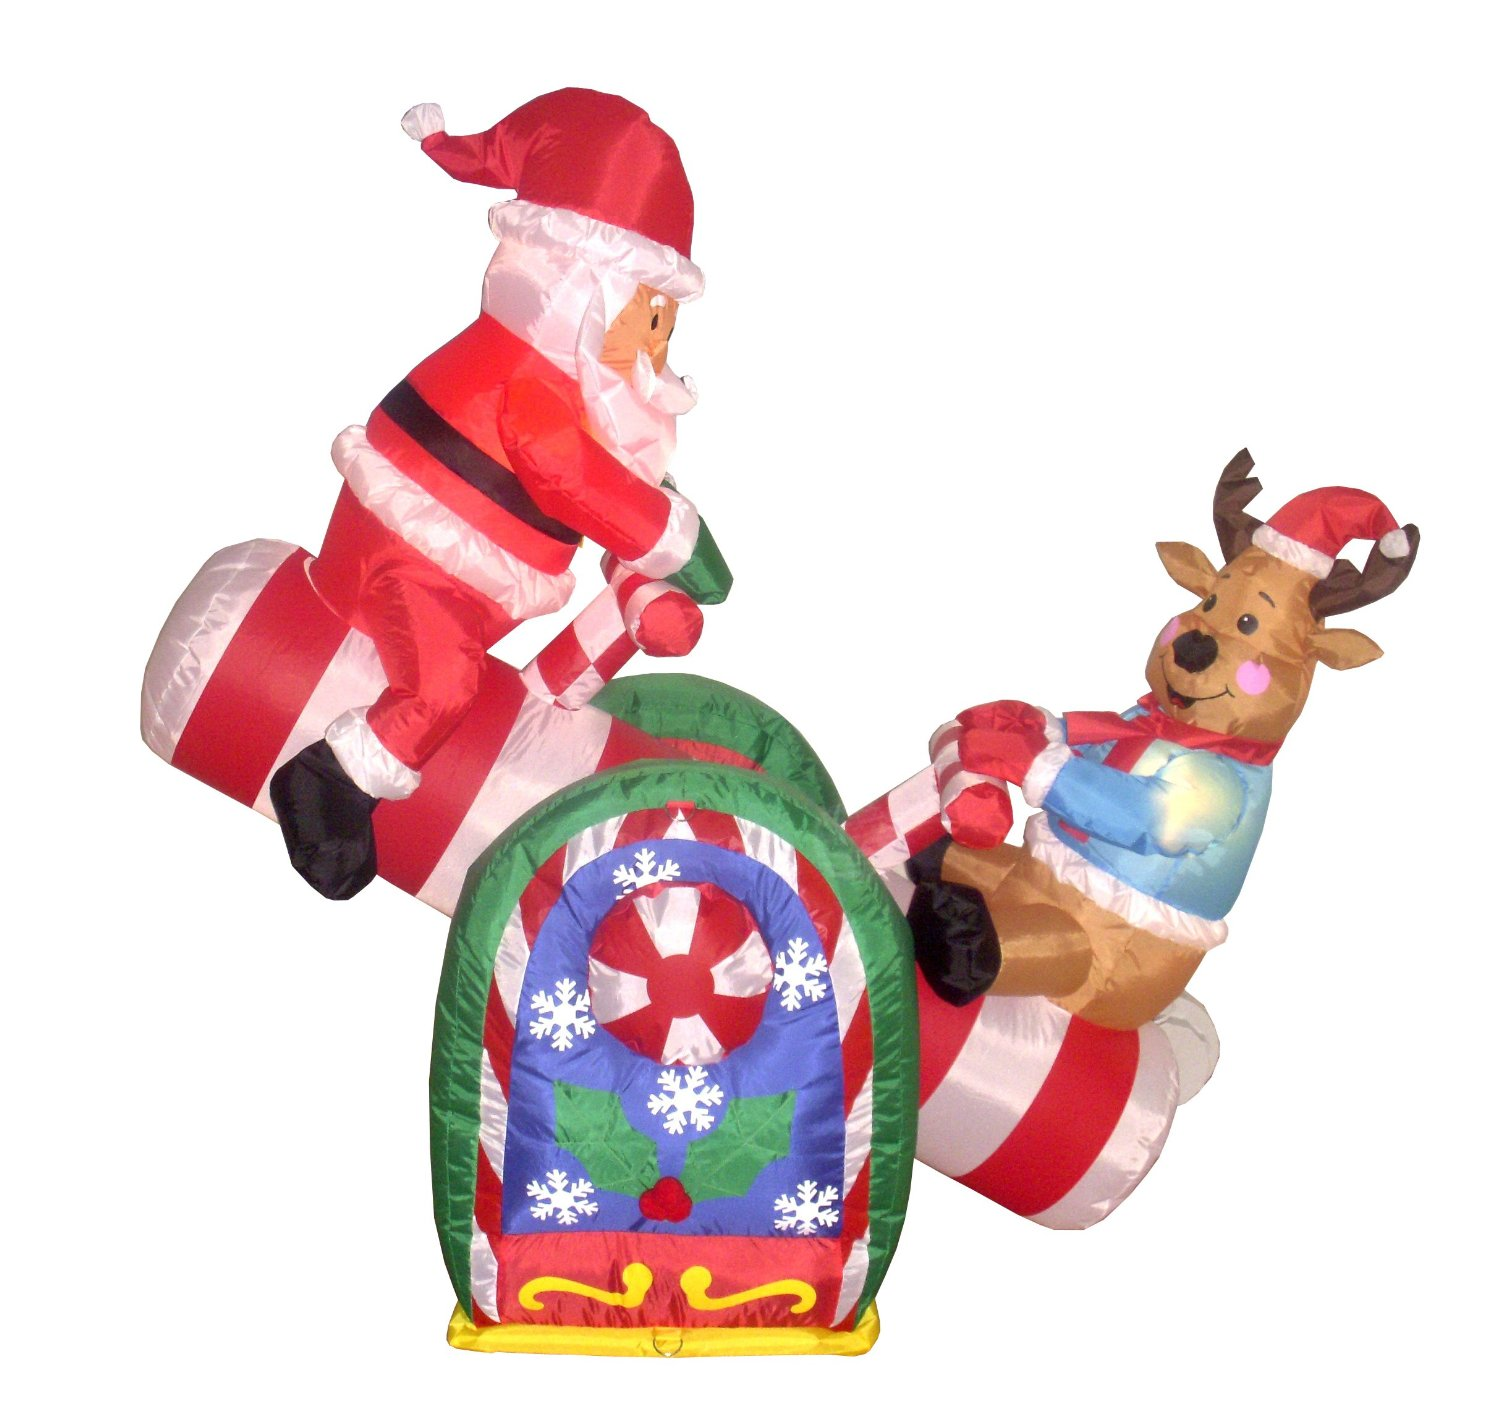 Best Online Stores For Home Decor Inflatable Outdoor Decorations Christmas Holiday Central